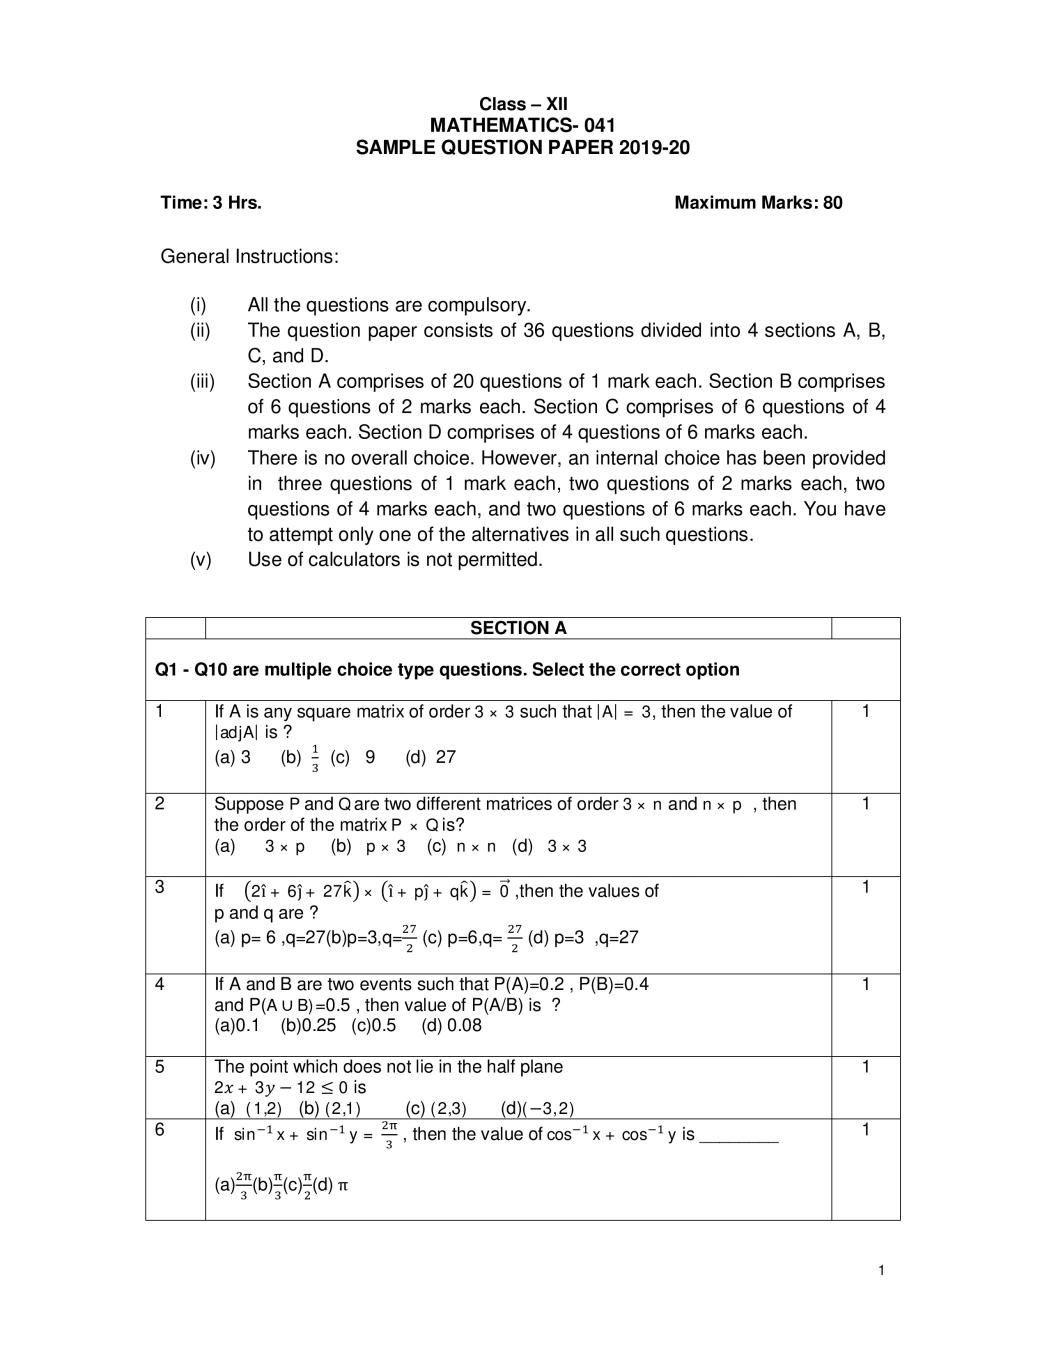 CBSE Sample Papers 2020 for Class 12 – Mathematics